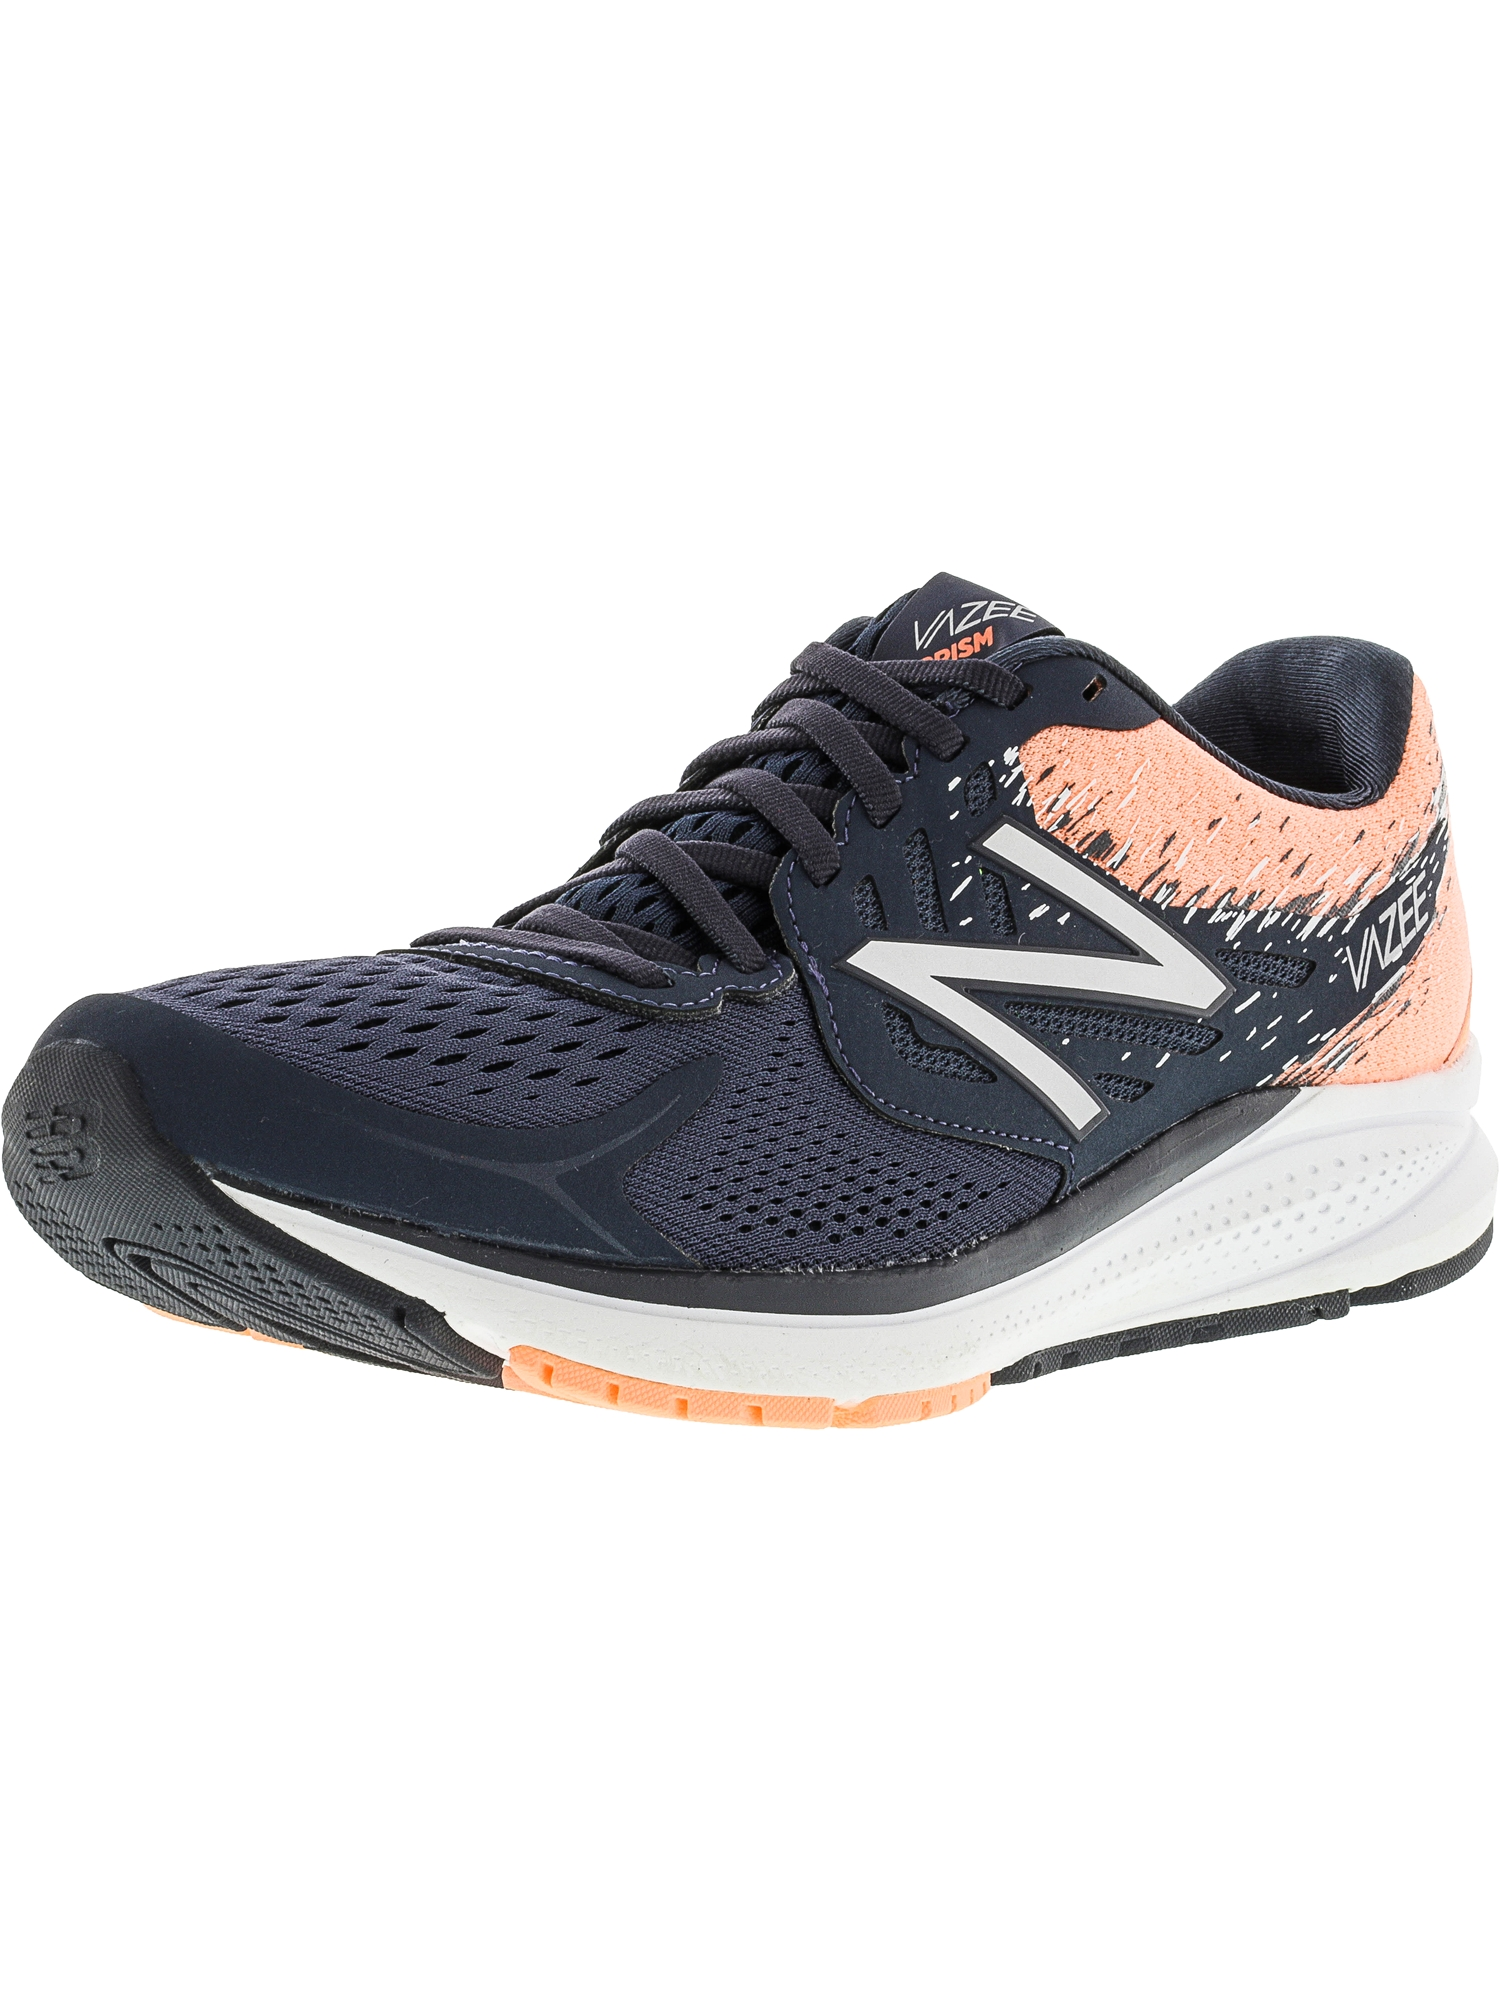 New Balance Women's Wprsm Bo2 Ankle-High Fabric Running Shoe - 10.5M